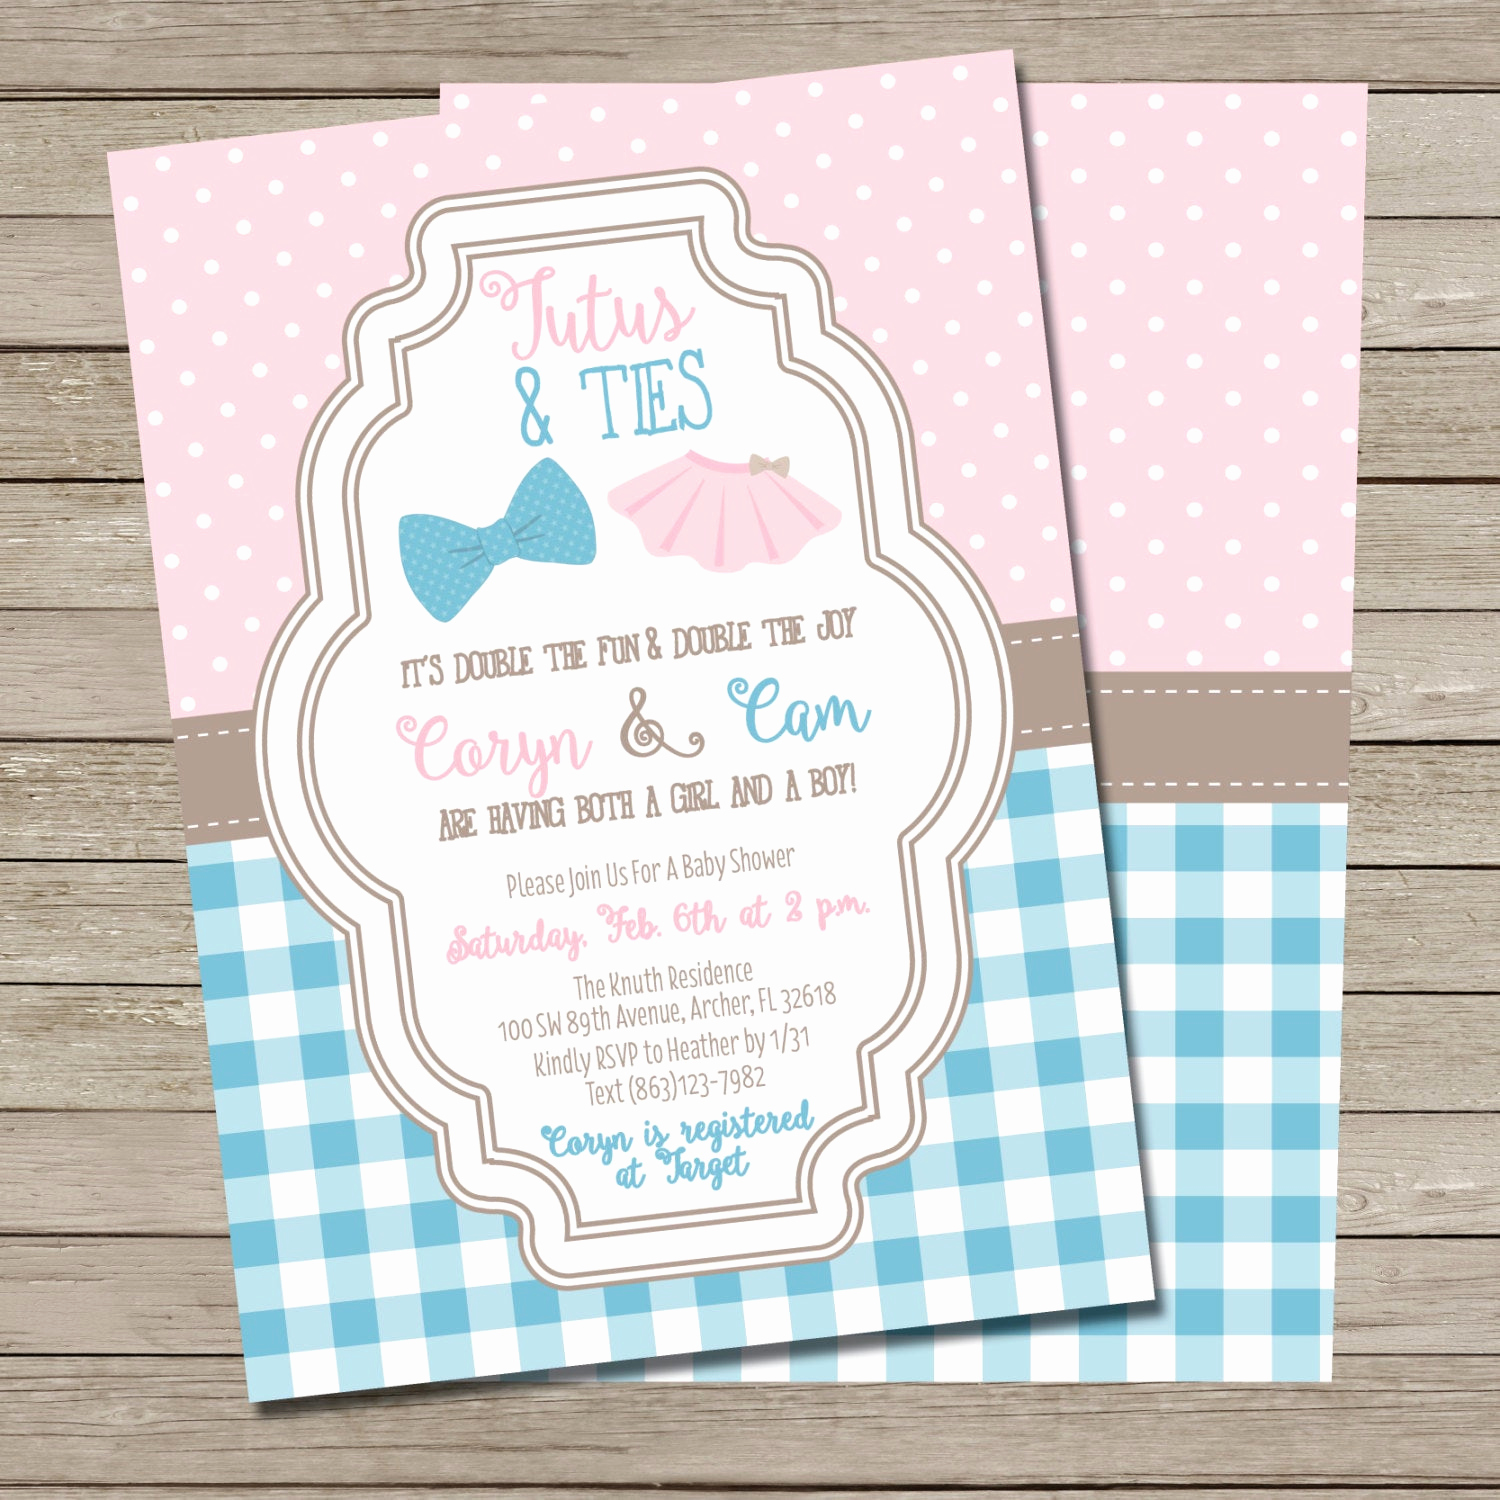 Baby Shower Invitation for Twins Luxury Tutus and Ties Baby Shower Invitation Printable Boy and Girl